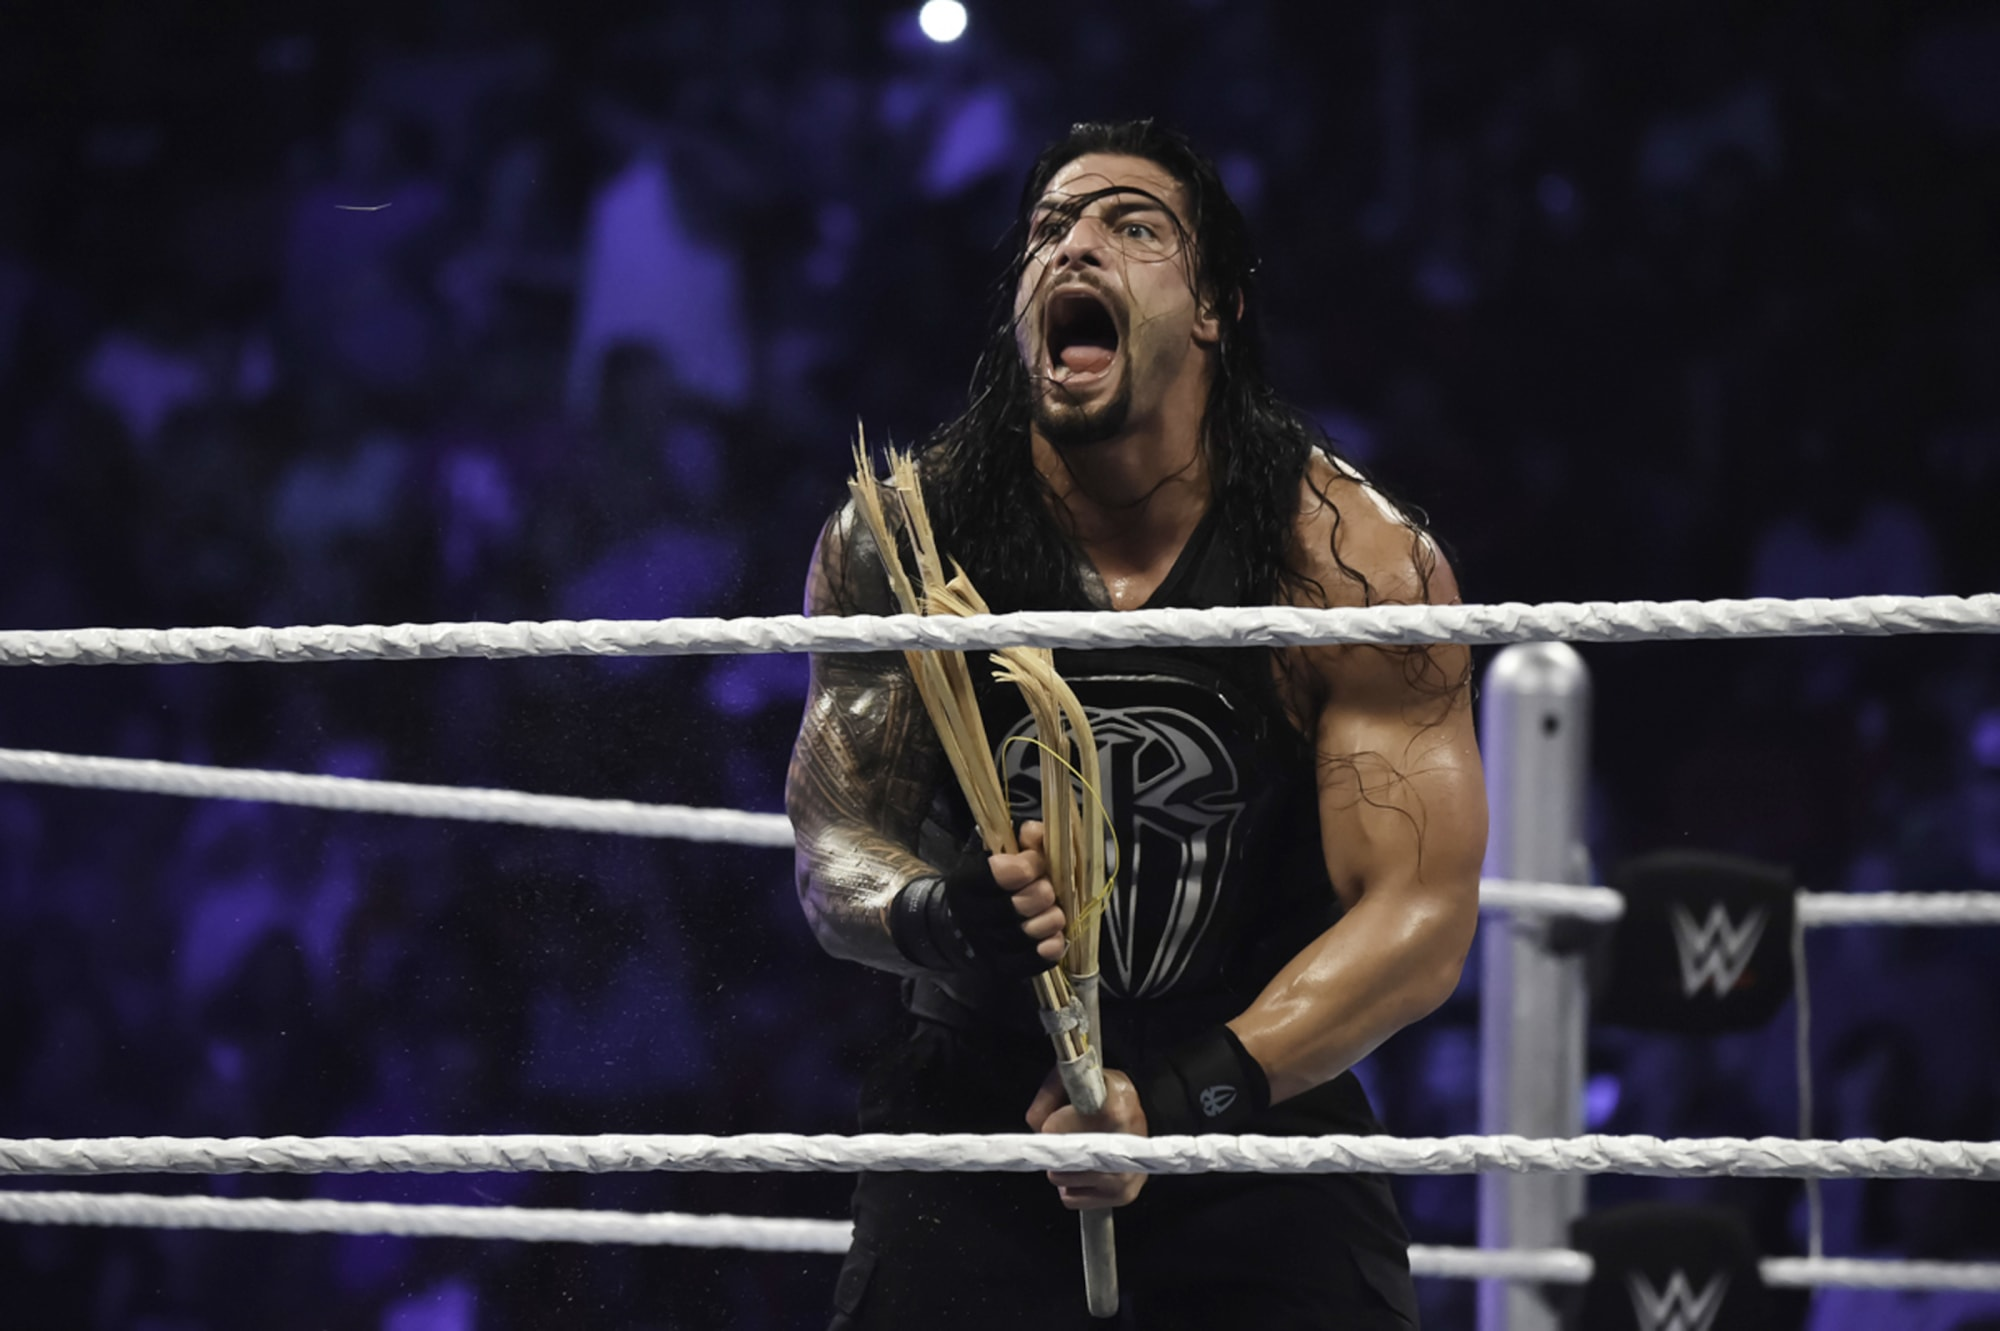 WWE SmackDown Ending Was Not 'Best For Business'